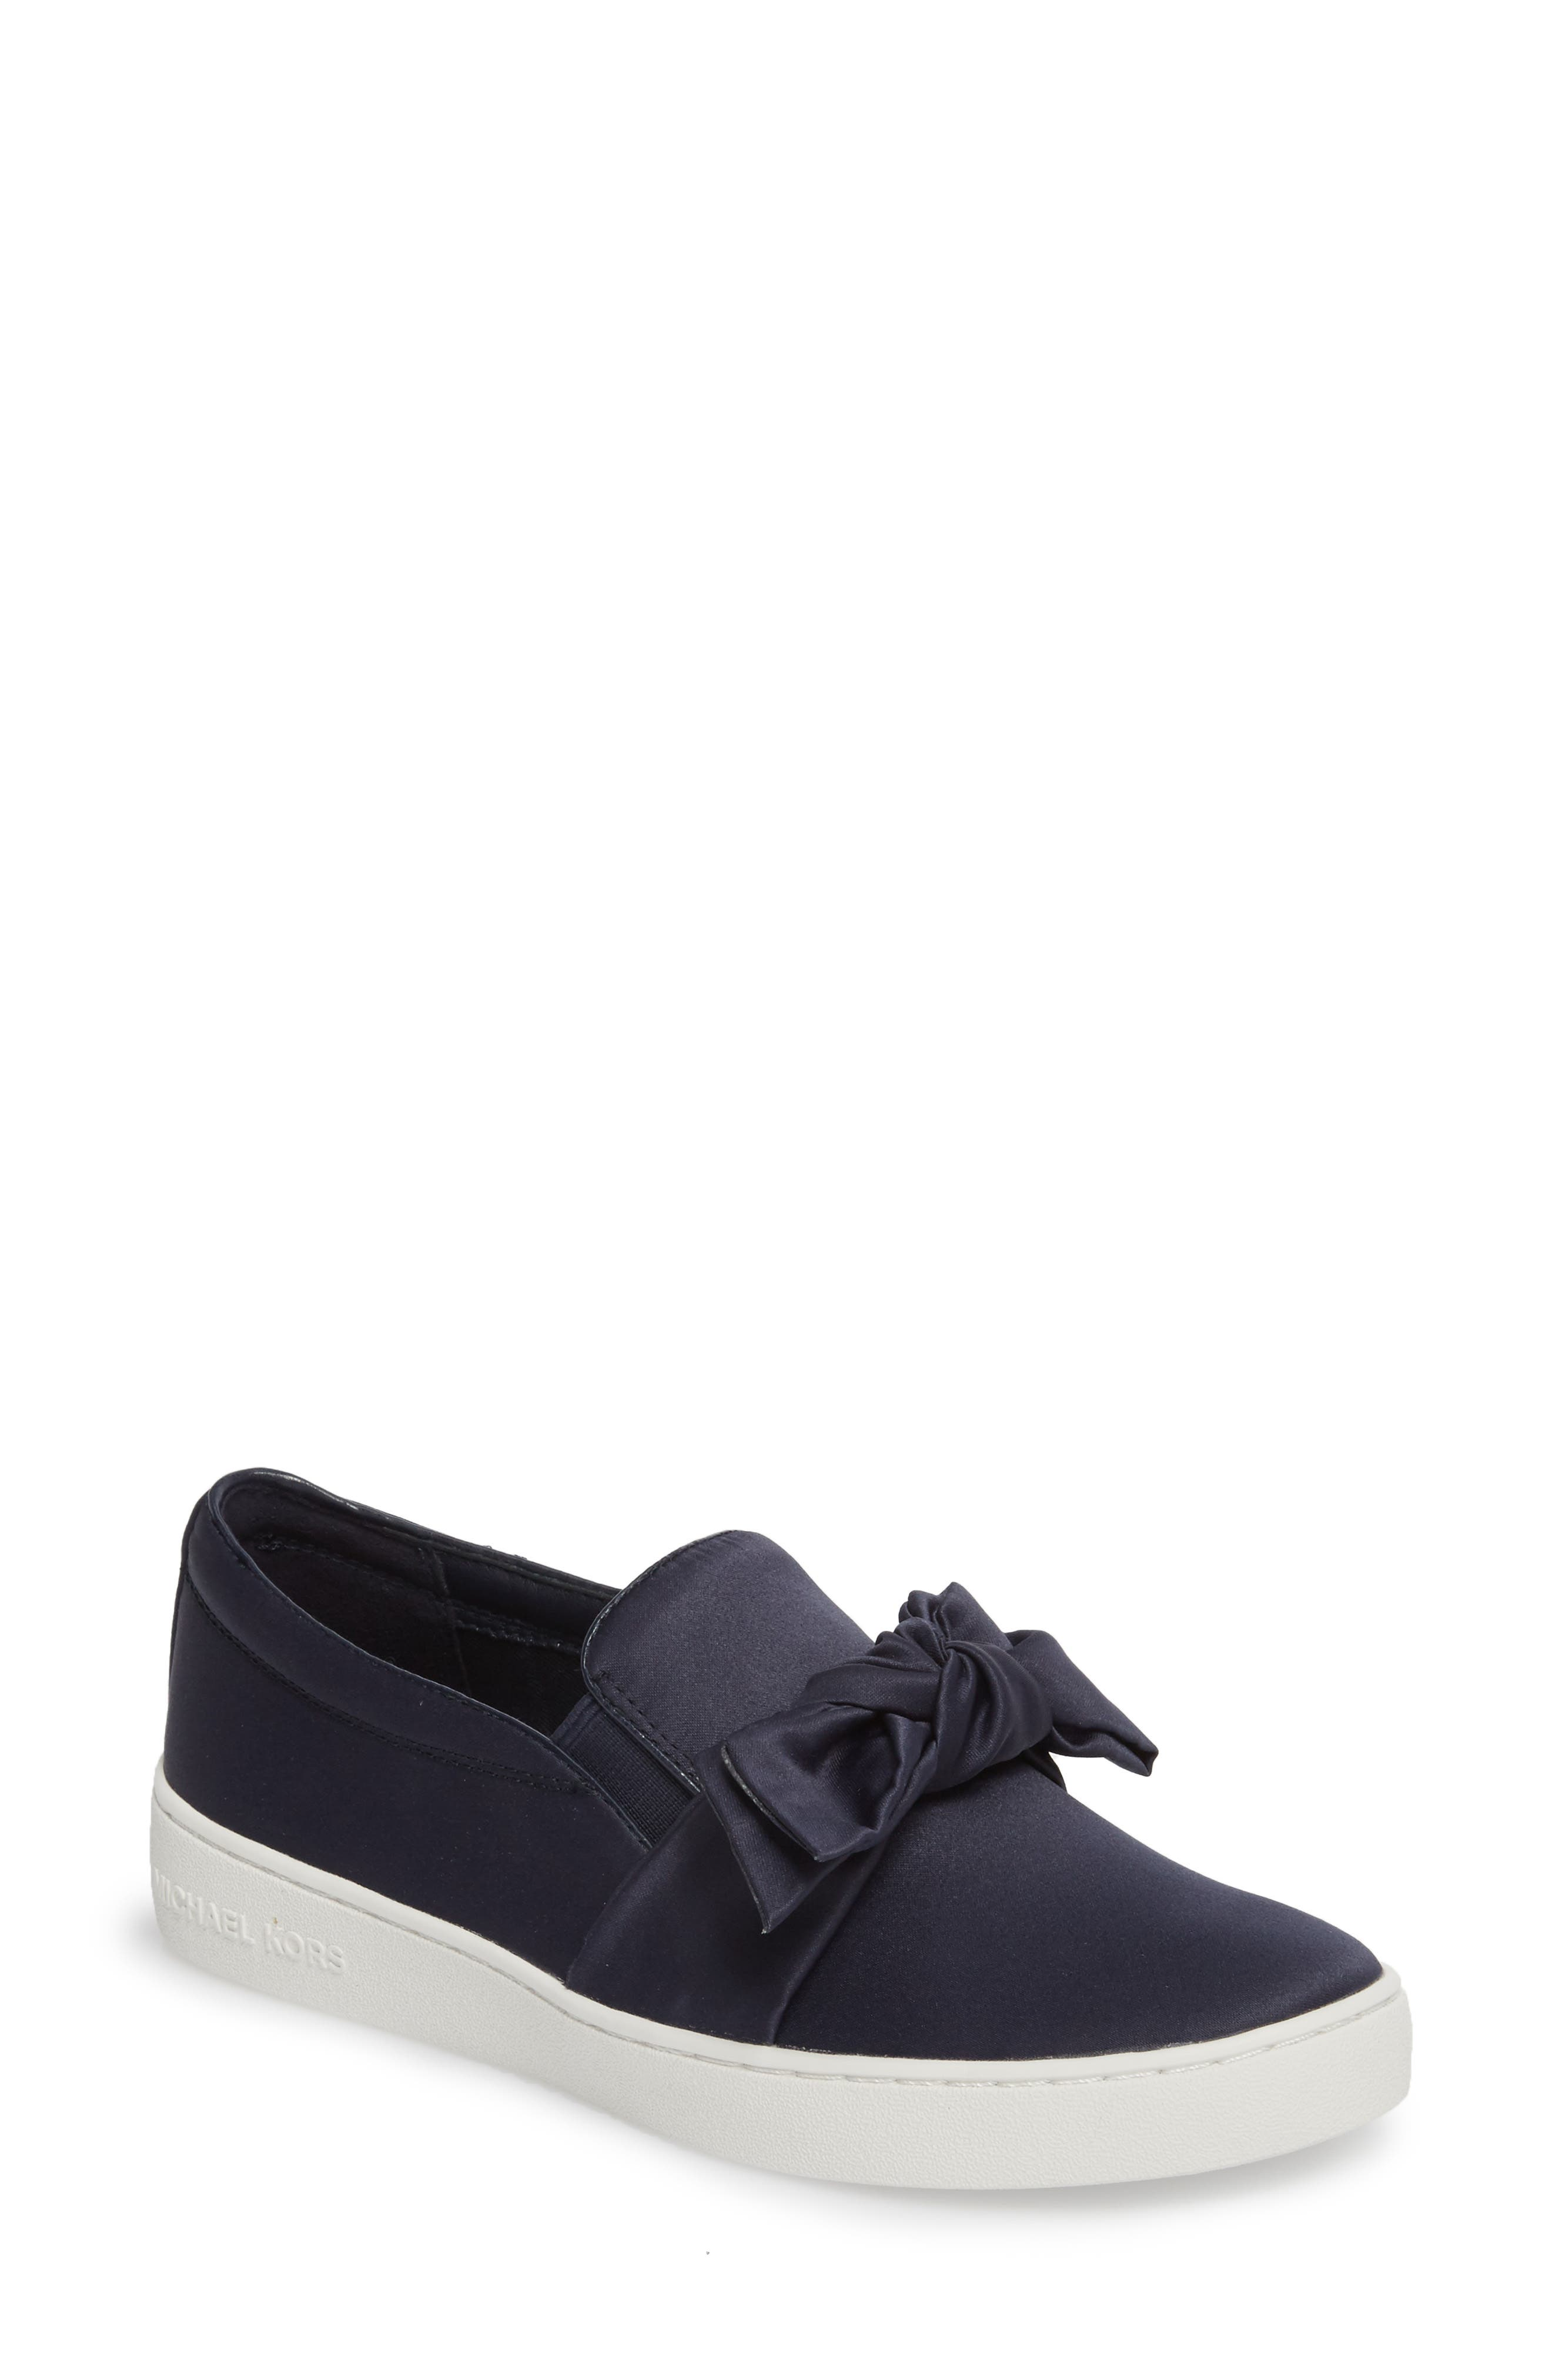 Willa Sneaker,                         Main,                         color, Admiral Satin